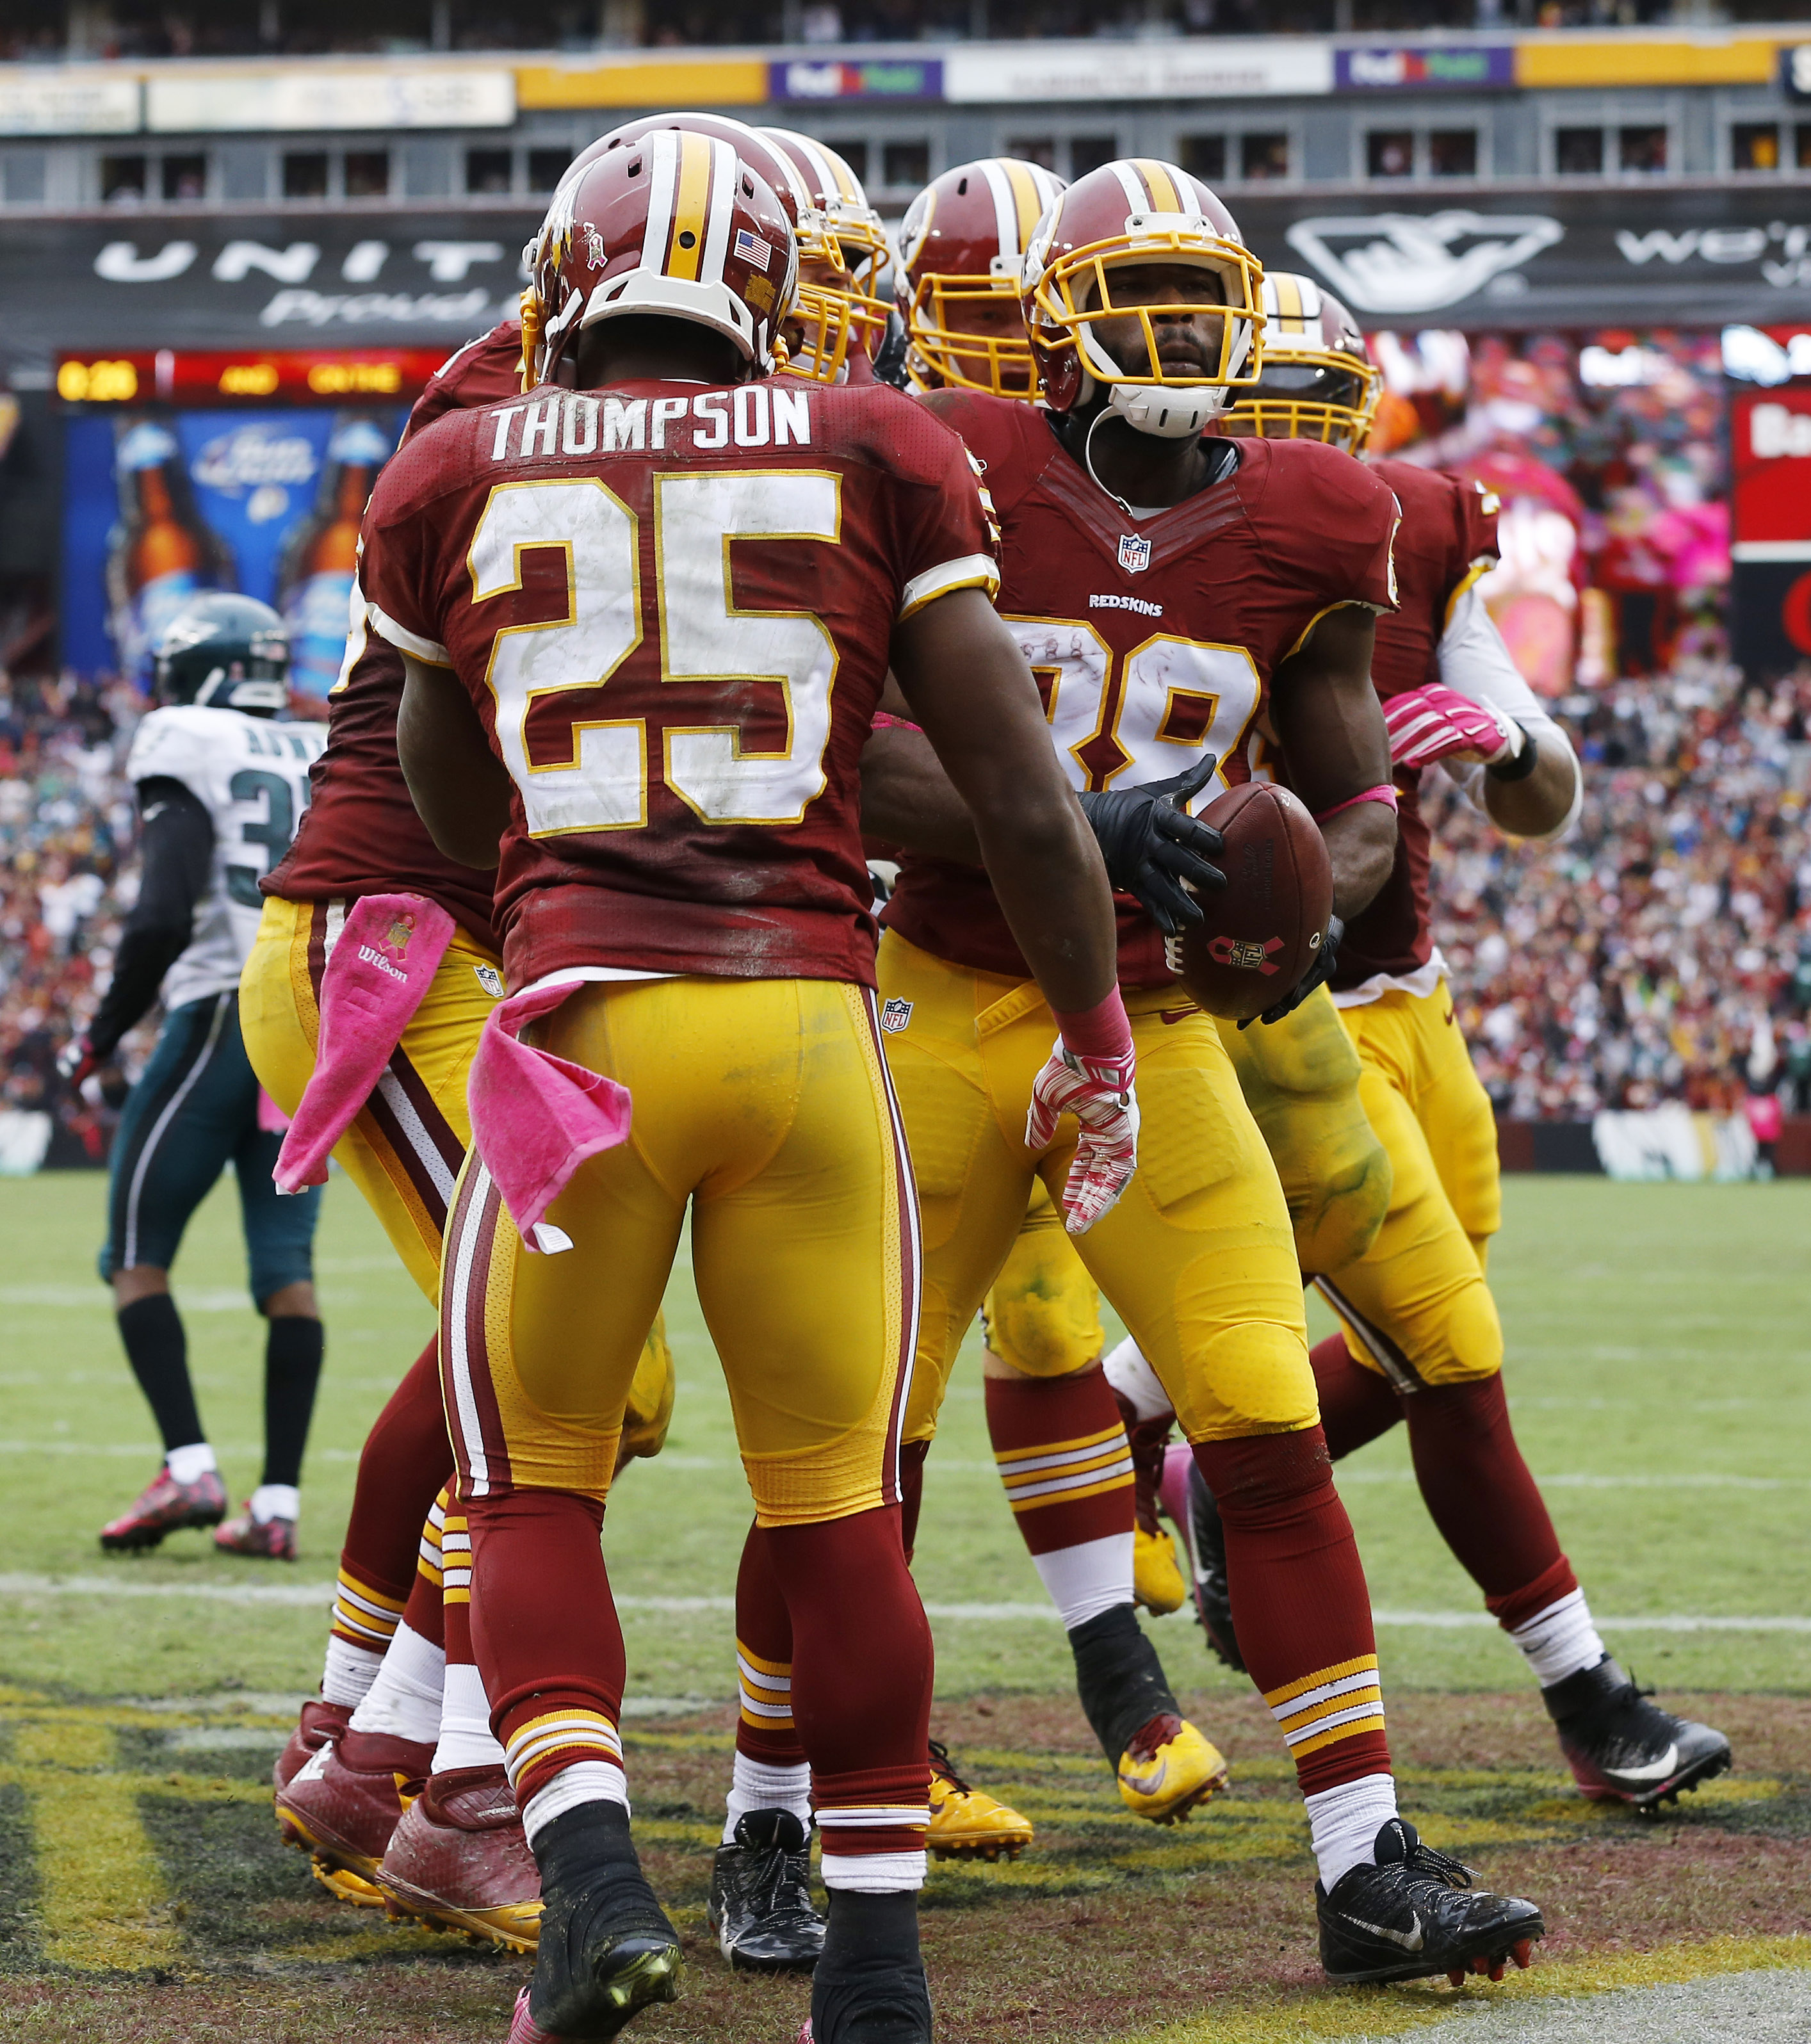 Washington Redskins wide receiver Pierre Garcon (88) celebrates his touchdown with teammates during the second half of an NFL football game against the Philadelphia Eagles in Landover, Md., Sunday, Oct. 4, 2015. The Redskins defeated the Eagles 23-20. (AP